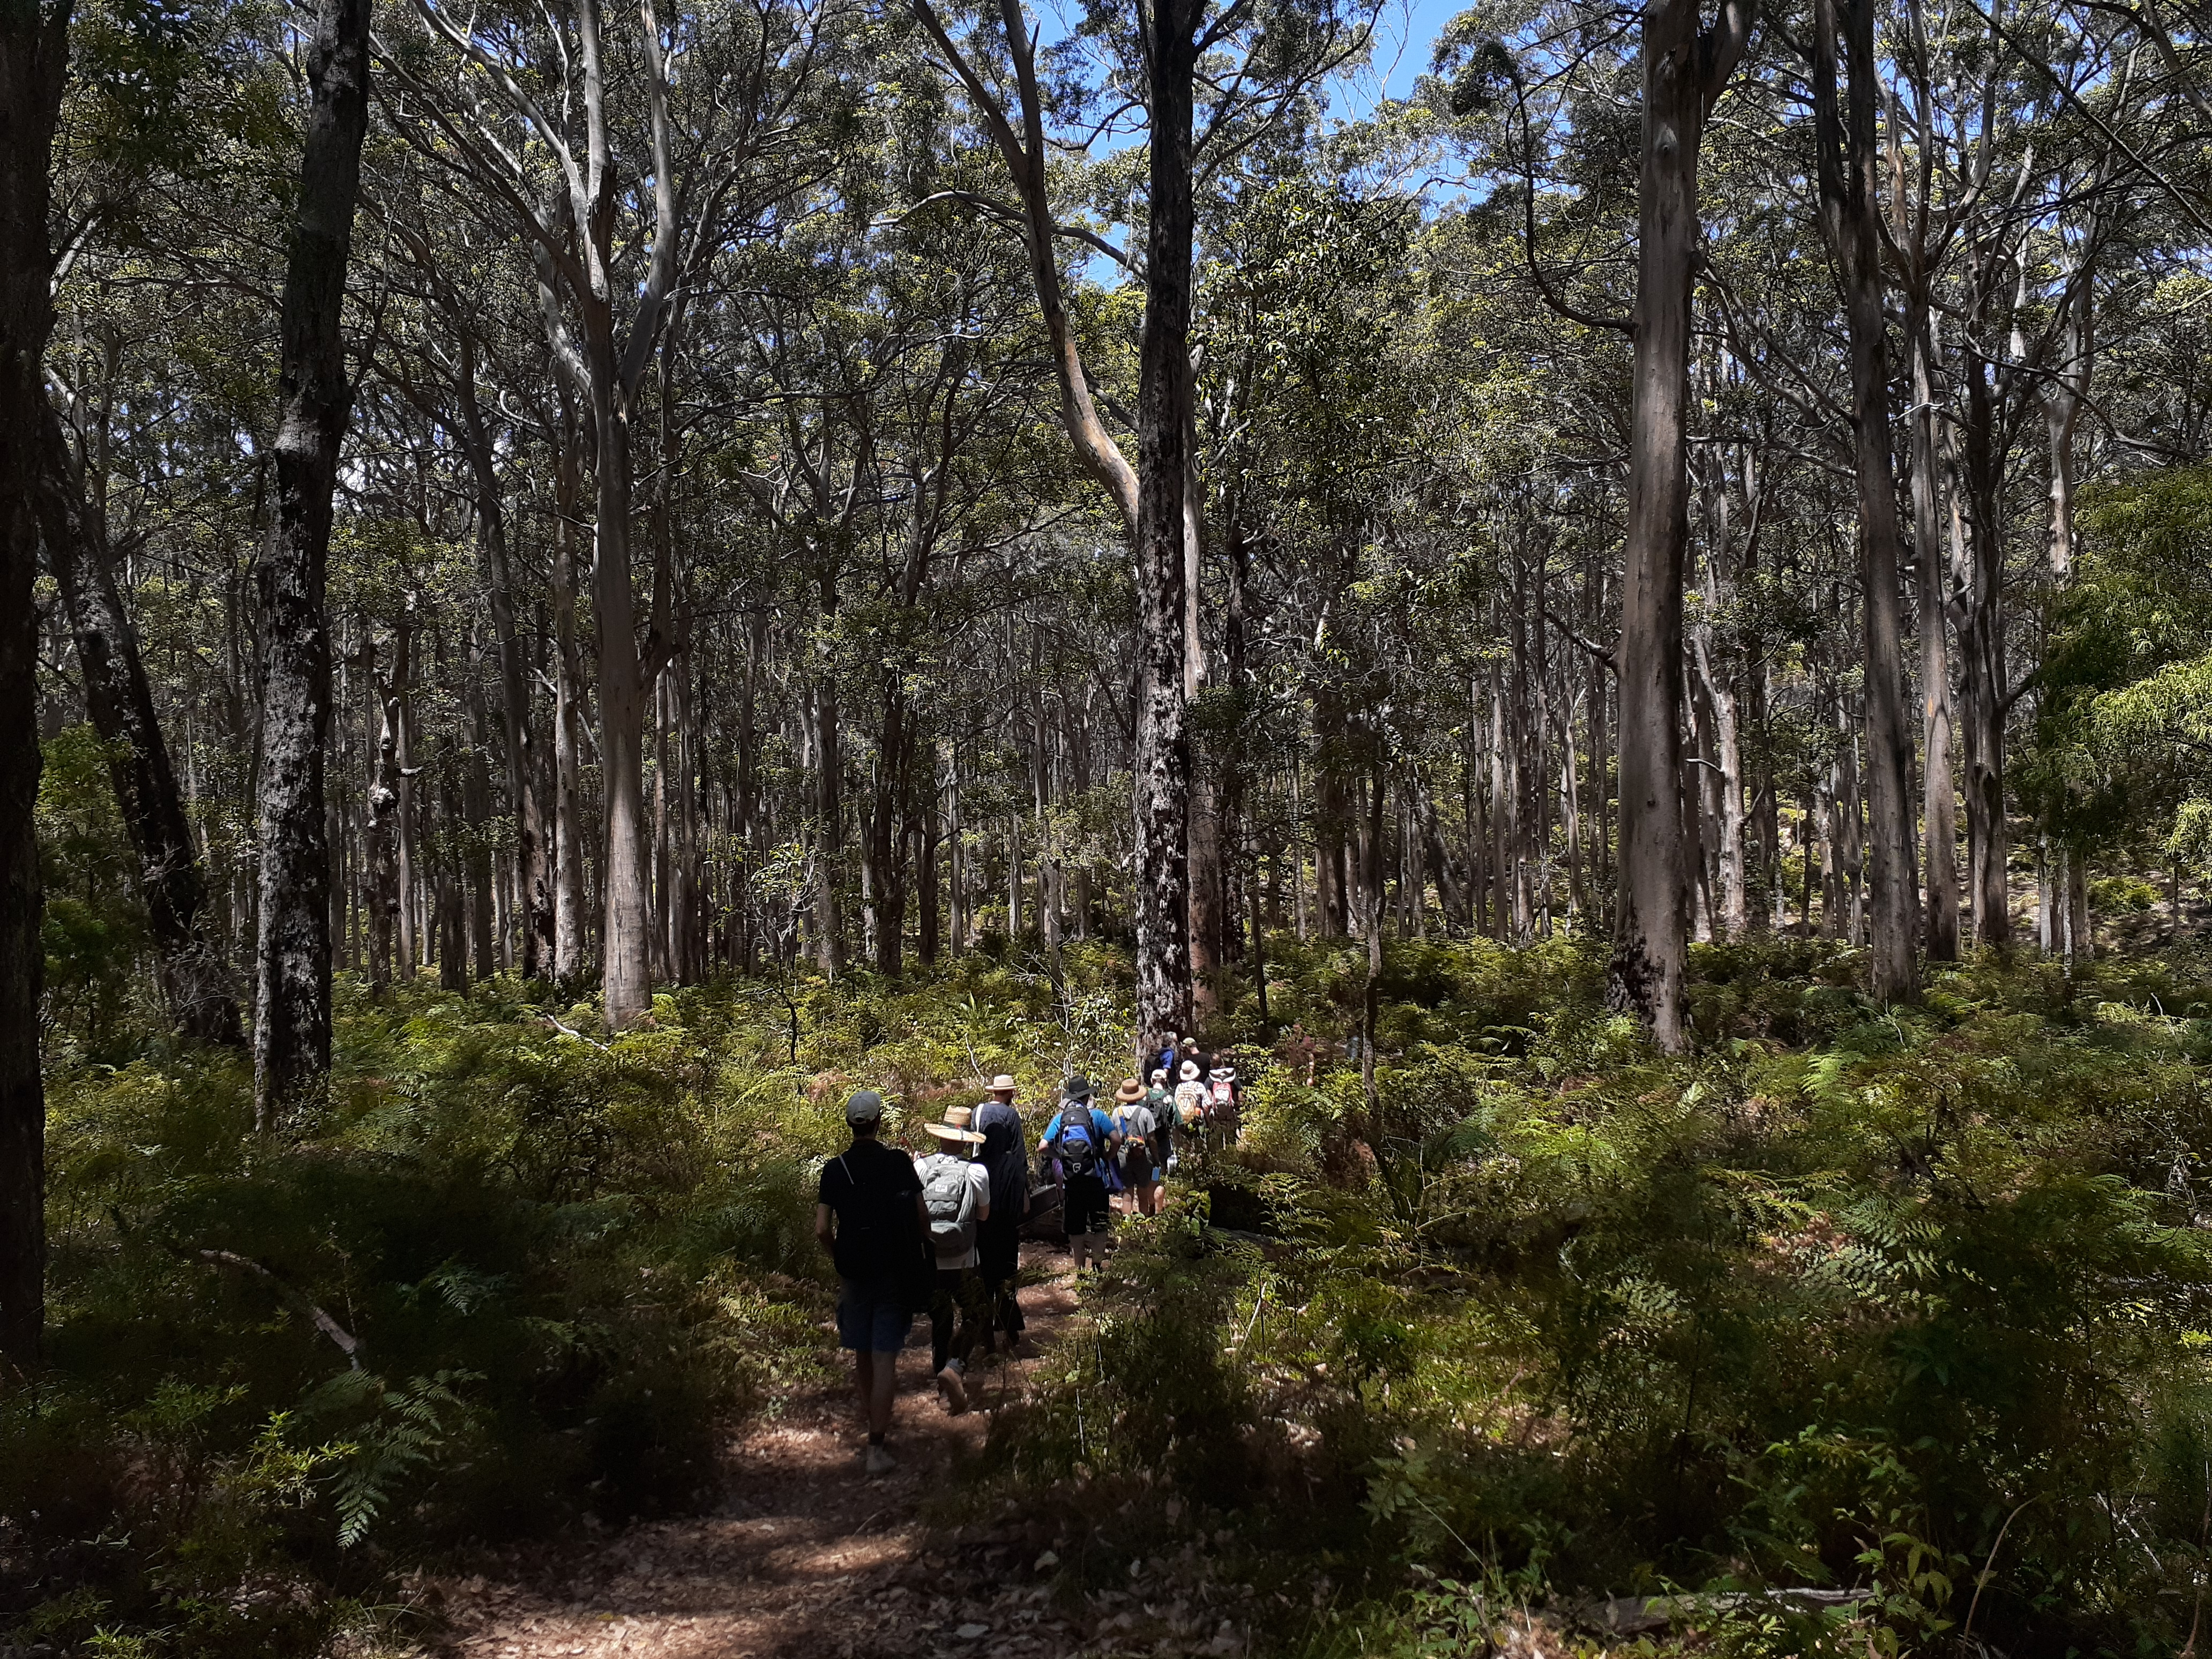 <p>The Boranup Karri Forest in the early afternoon.</p>